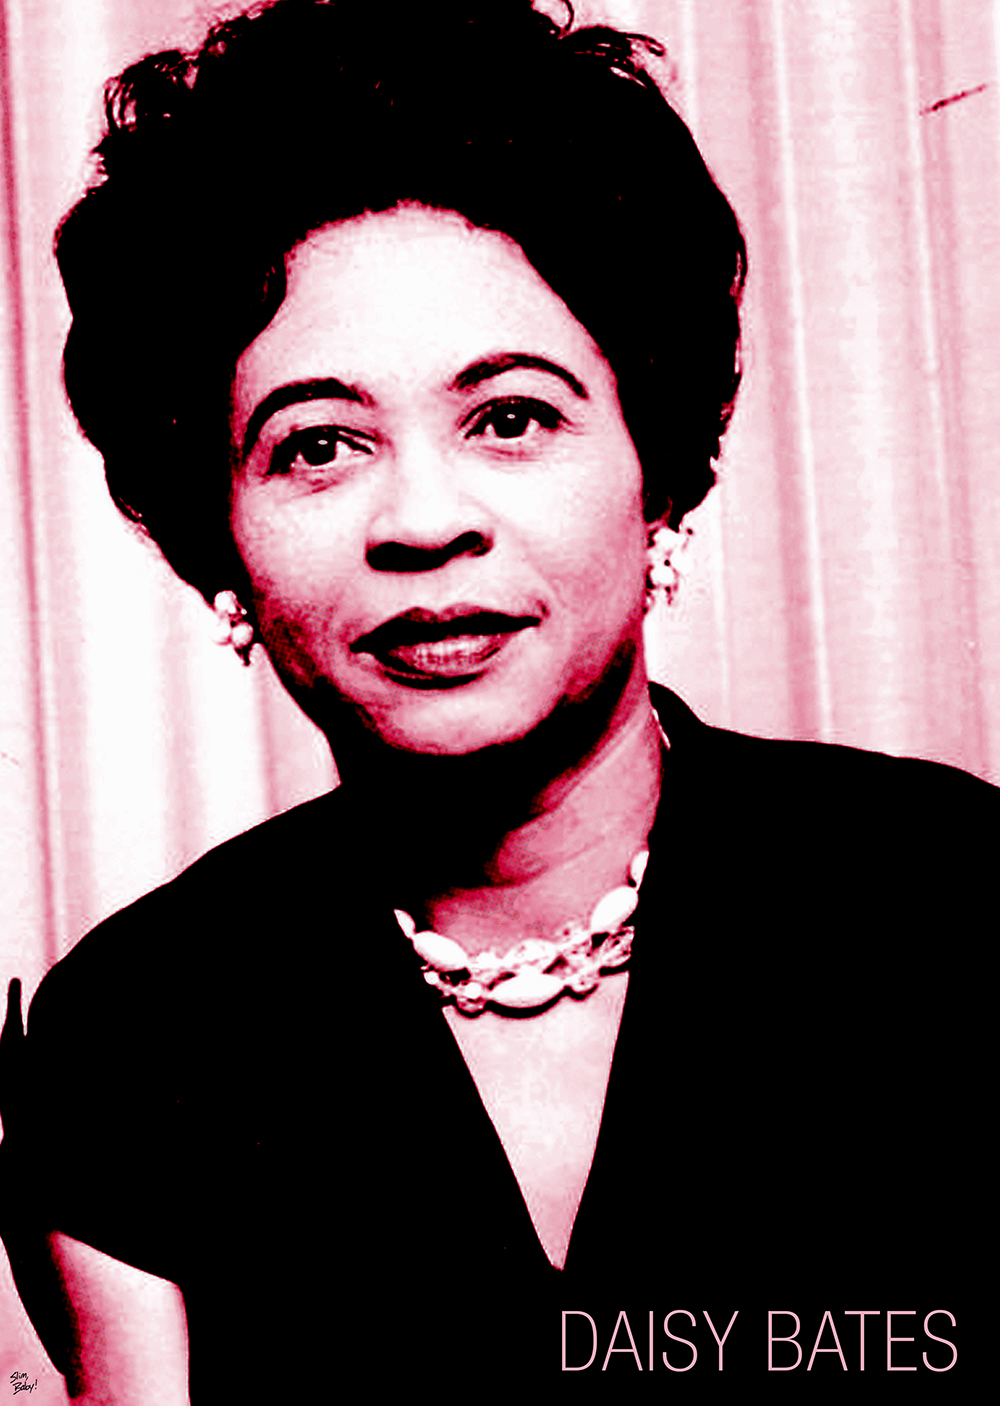 daisy bates Daisy lee gaston bates, a civil rights advocate, newspaper publisher, and president of the arkansas chapter of the national association for the advancement of colored people (naacp), advised the nine students who desegregated central high school in little rock, arkansas, in 1957.